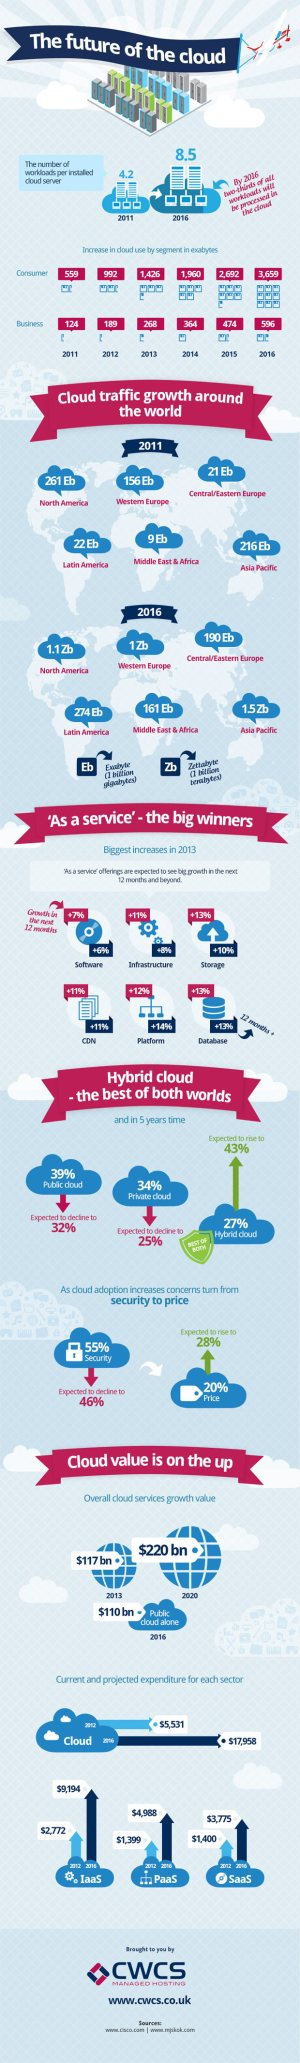 future-of-the-cloud-infographic